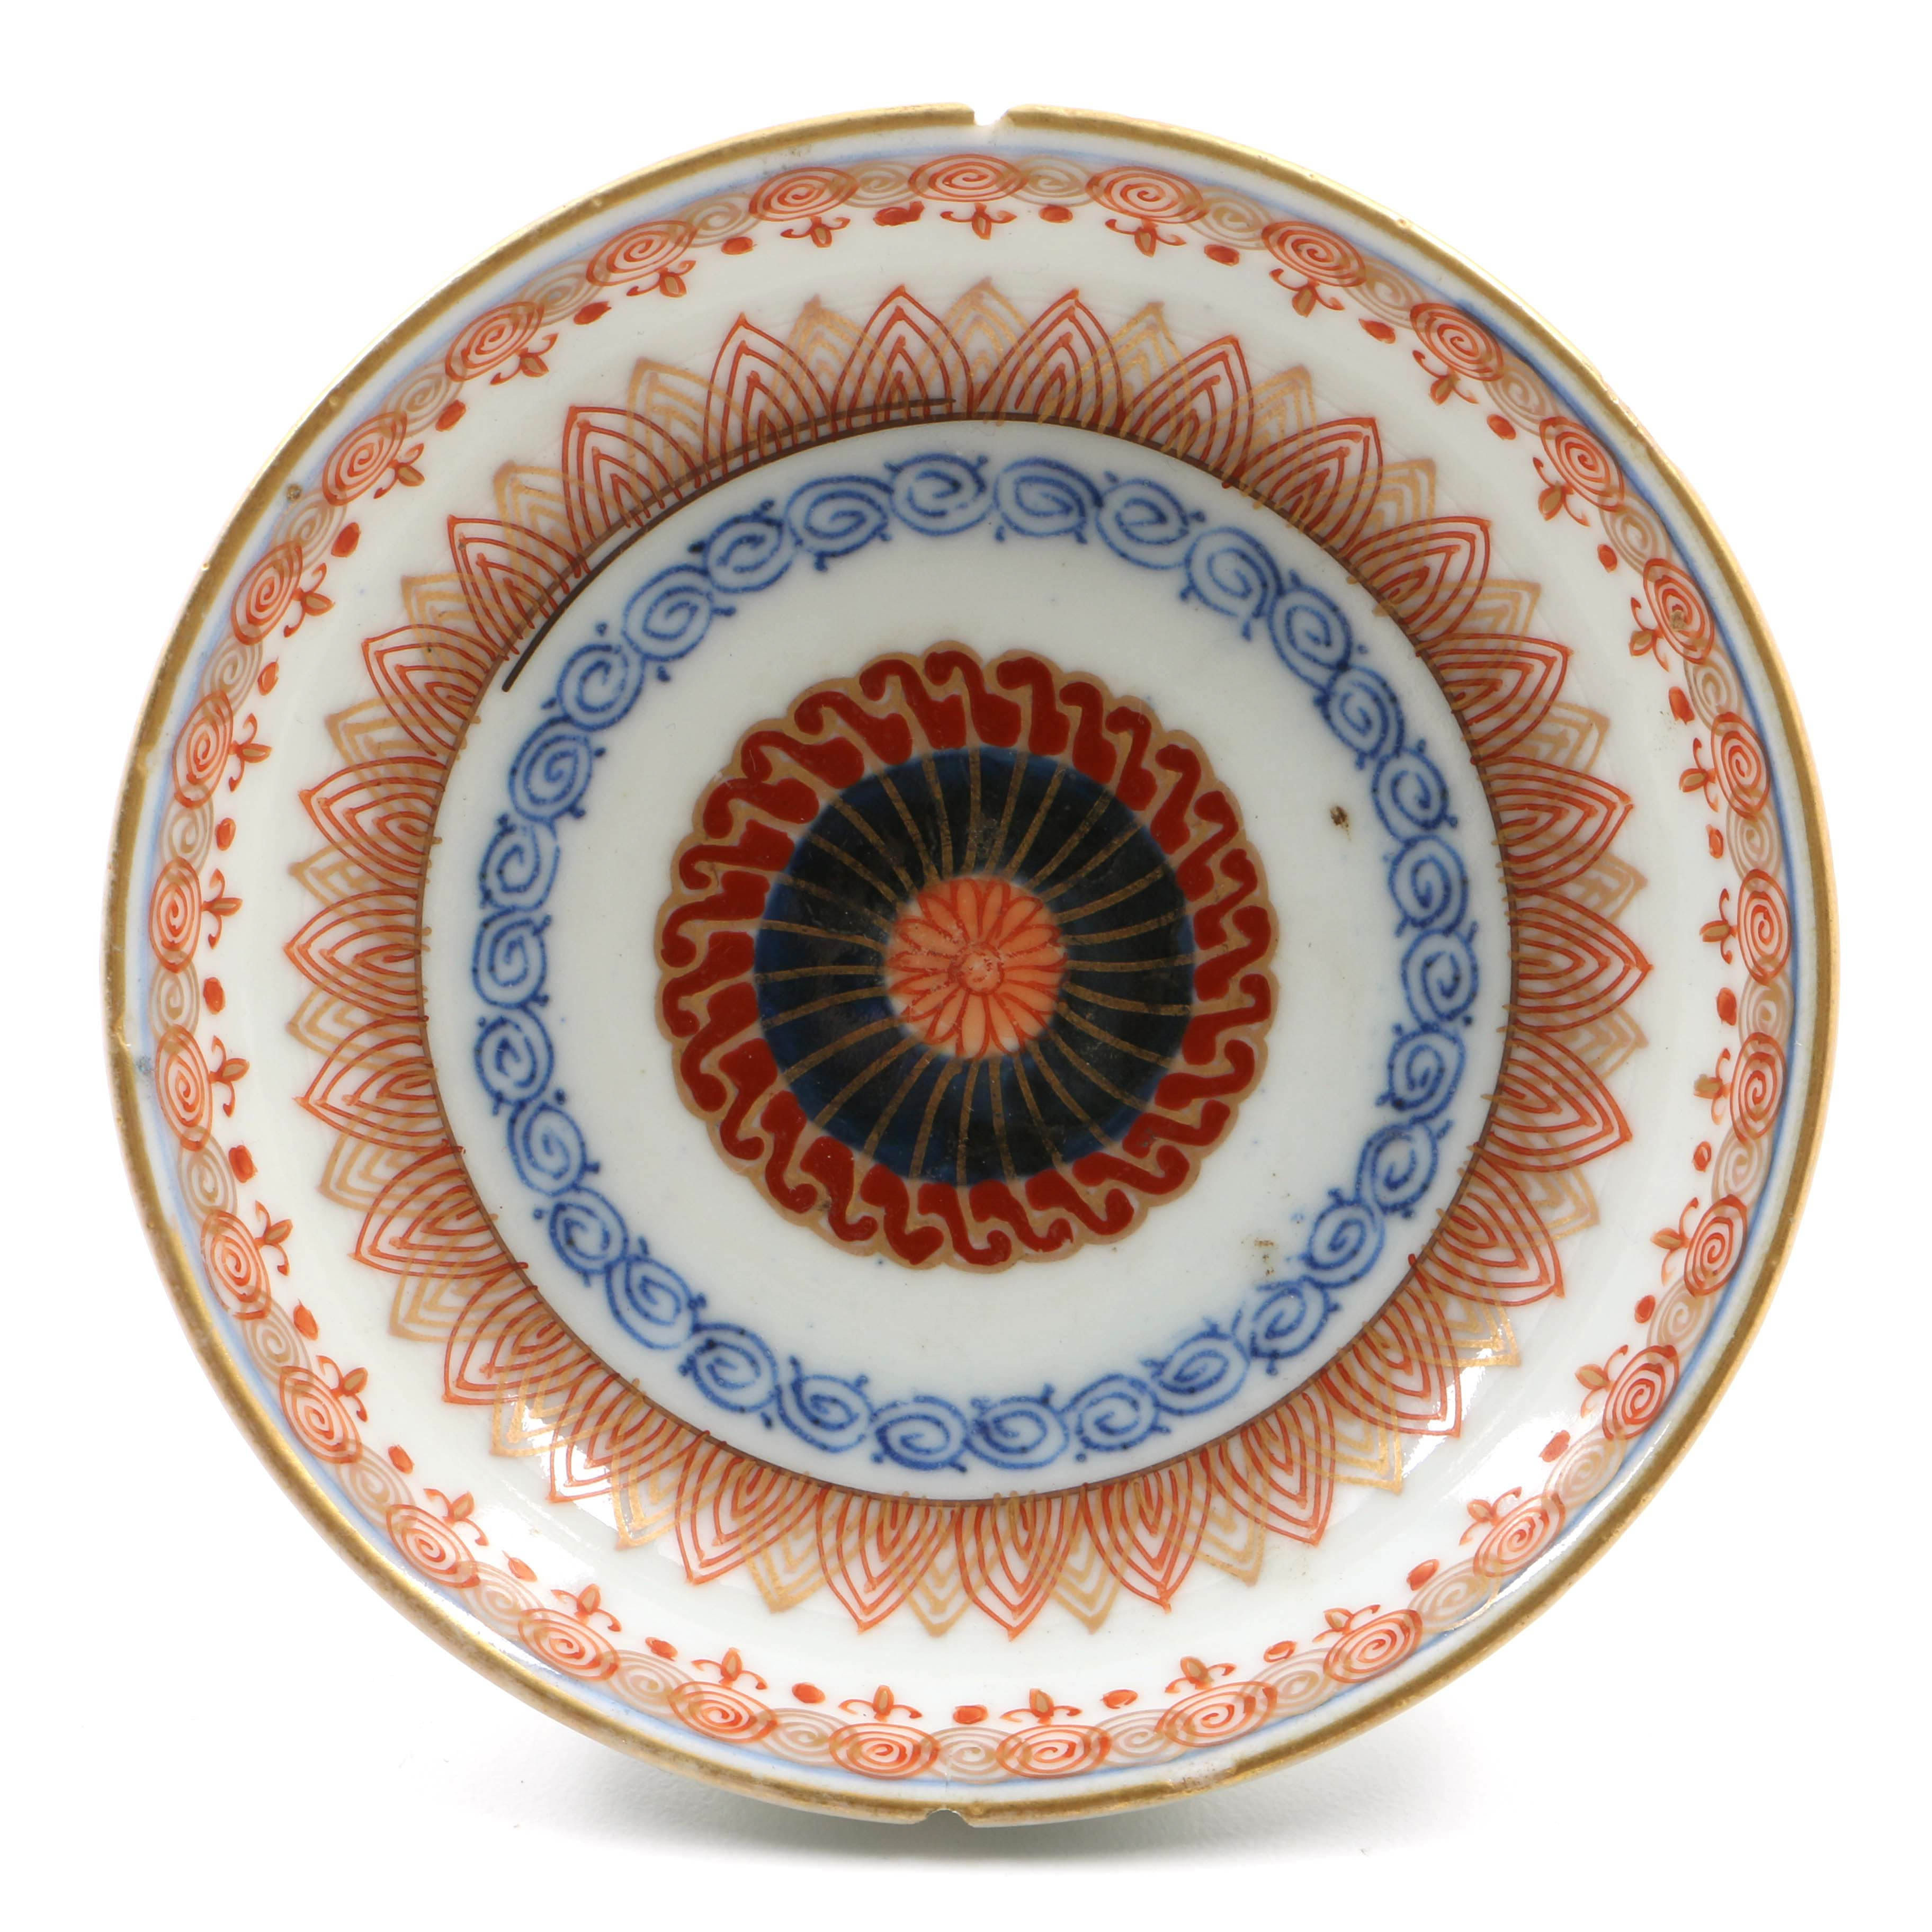 Chinese Enameled Dish with Chenghua Mark